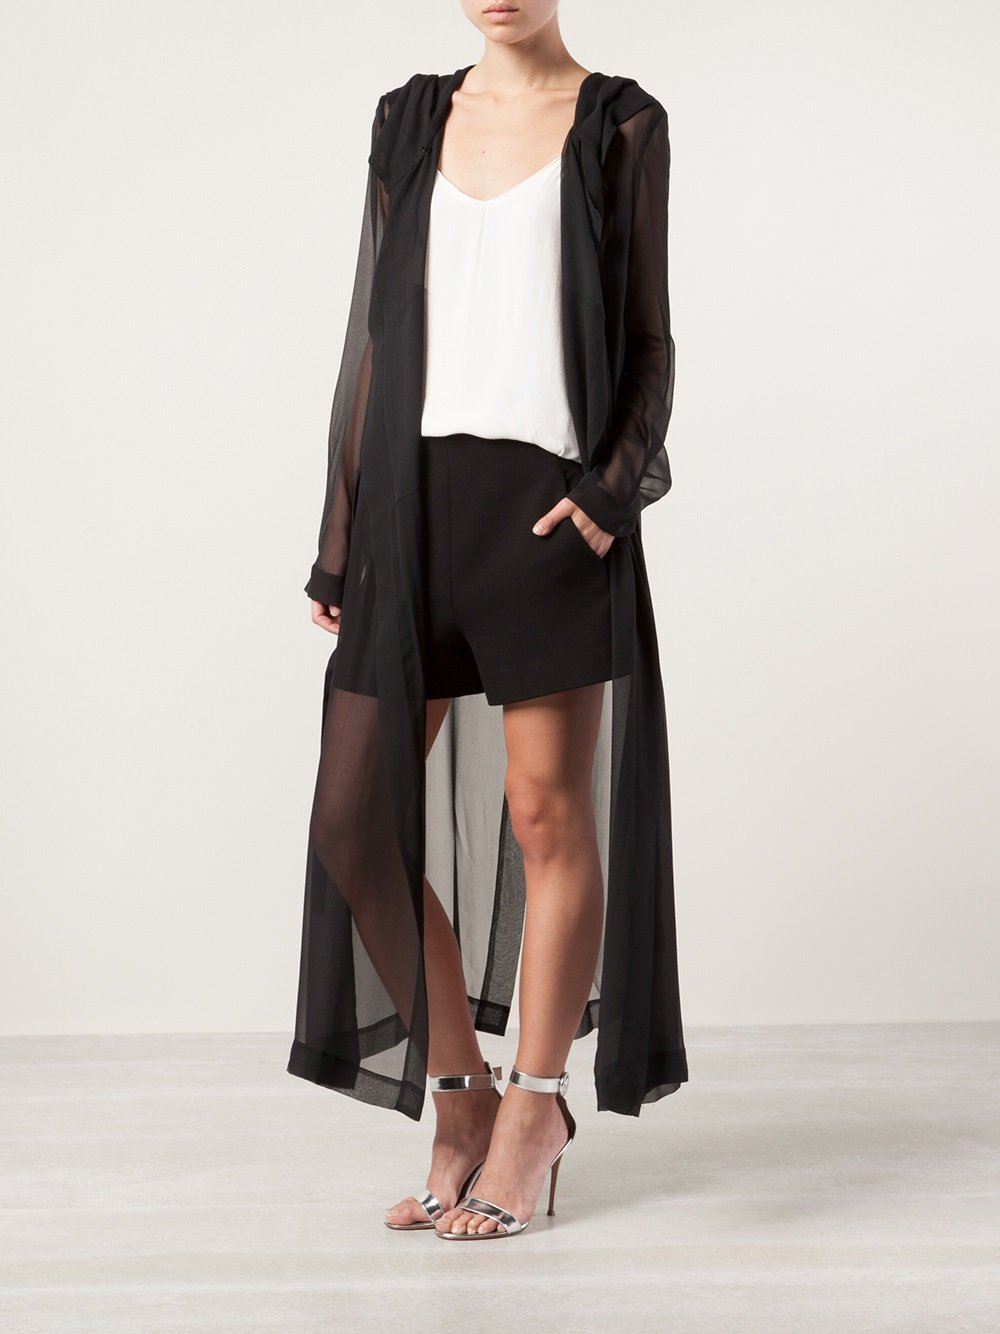 Lyst Plein Sud Sheer Hooded Jacket In Black